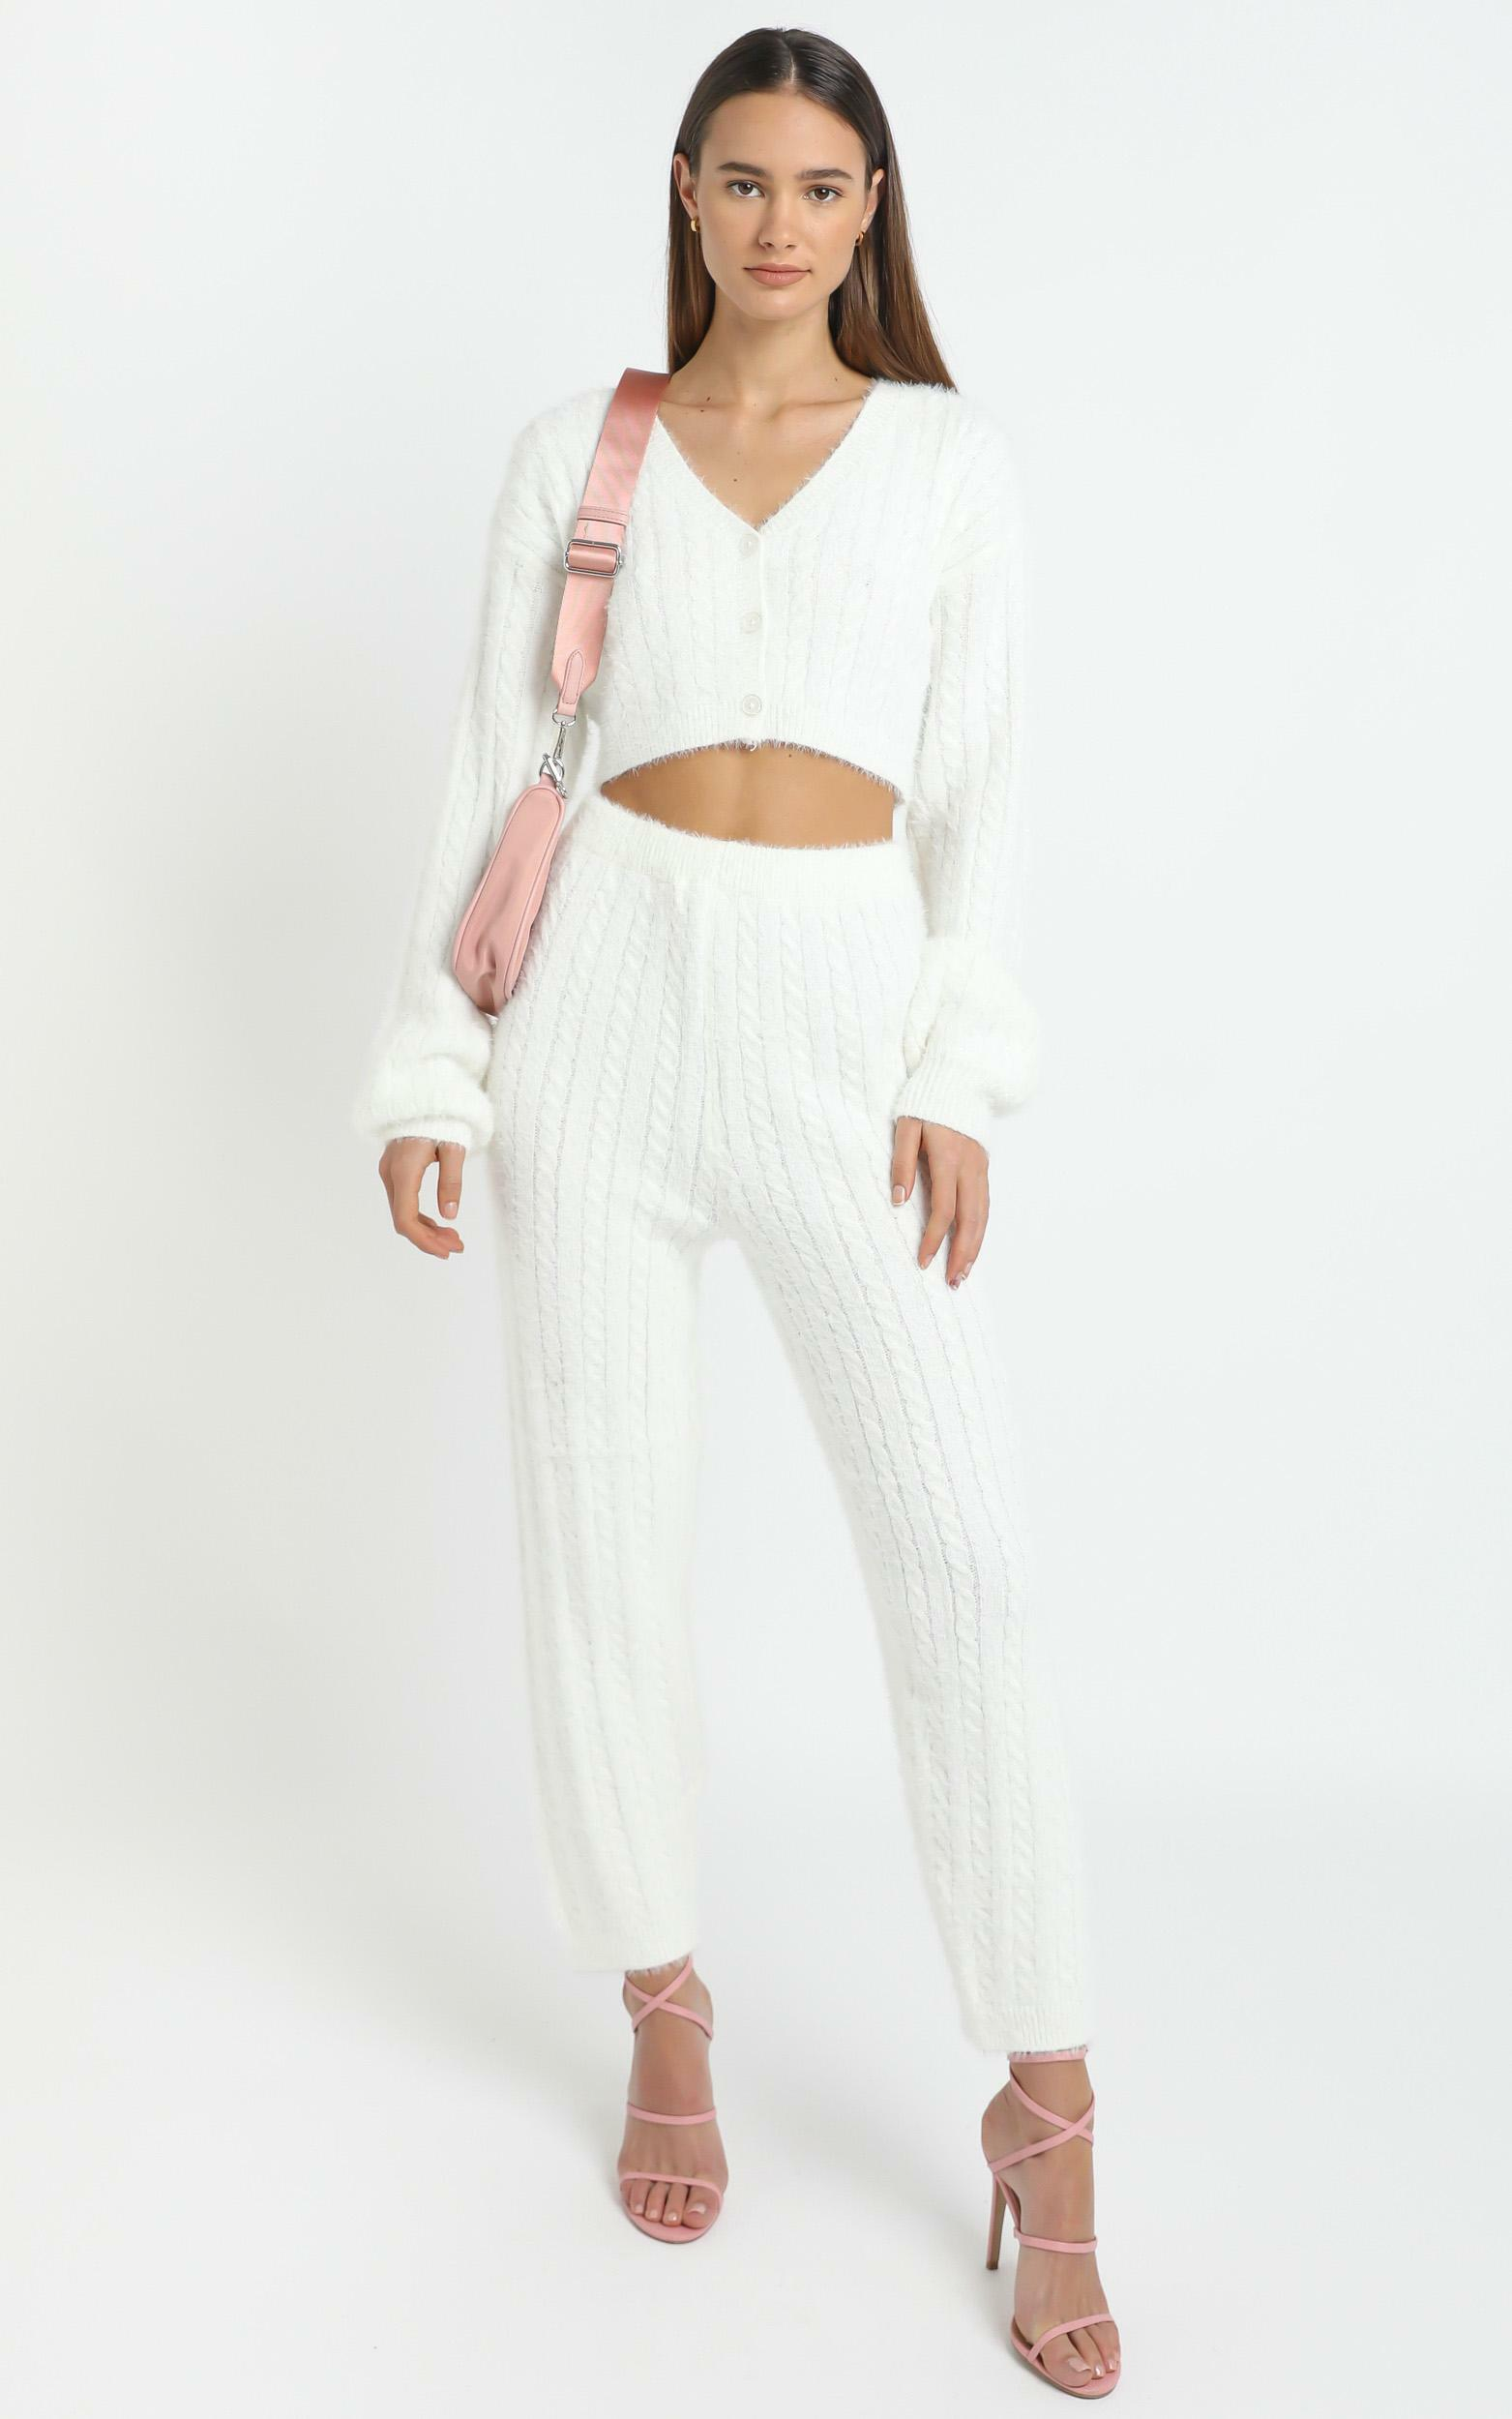 Eevi Two Piece Set in White - L/XL, White, hi-res image number null